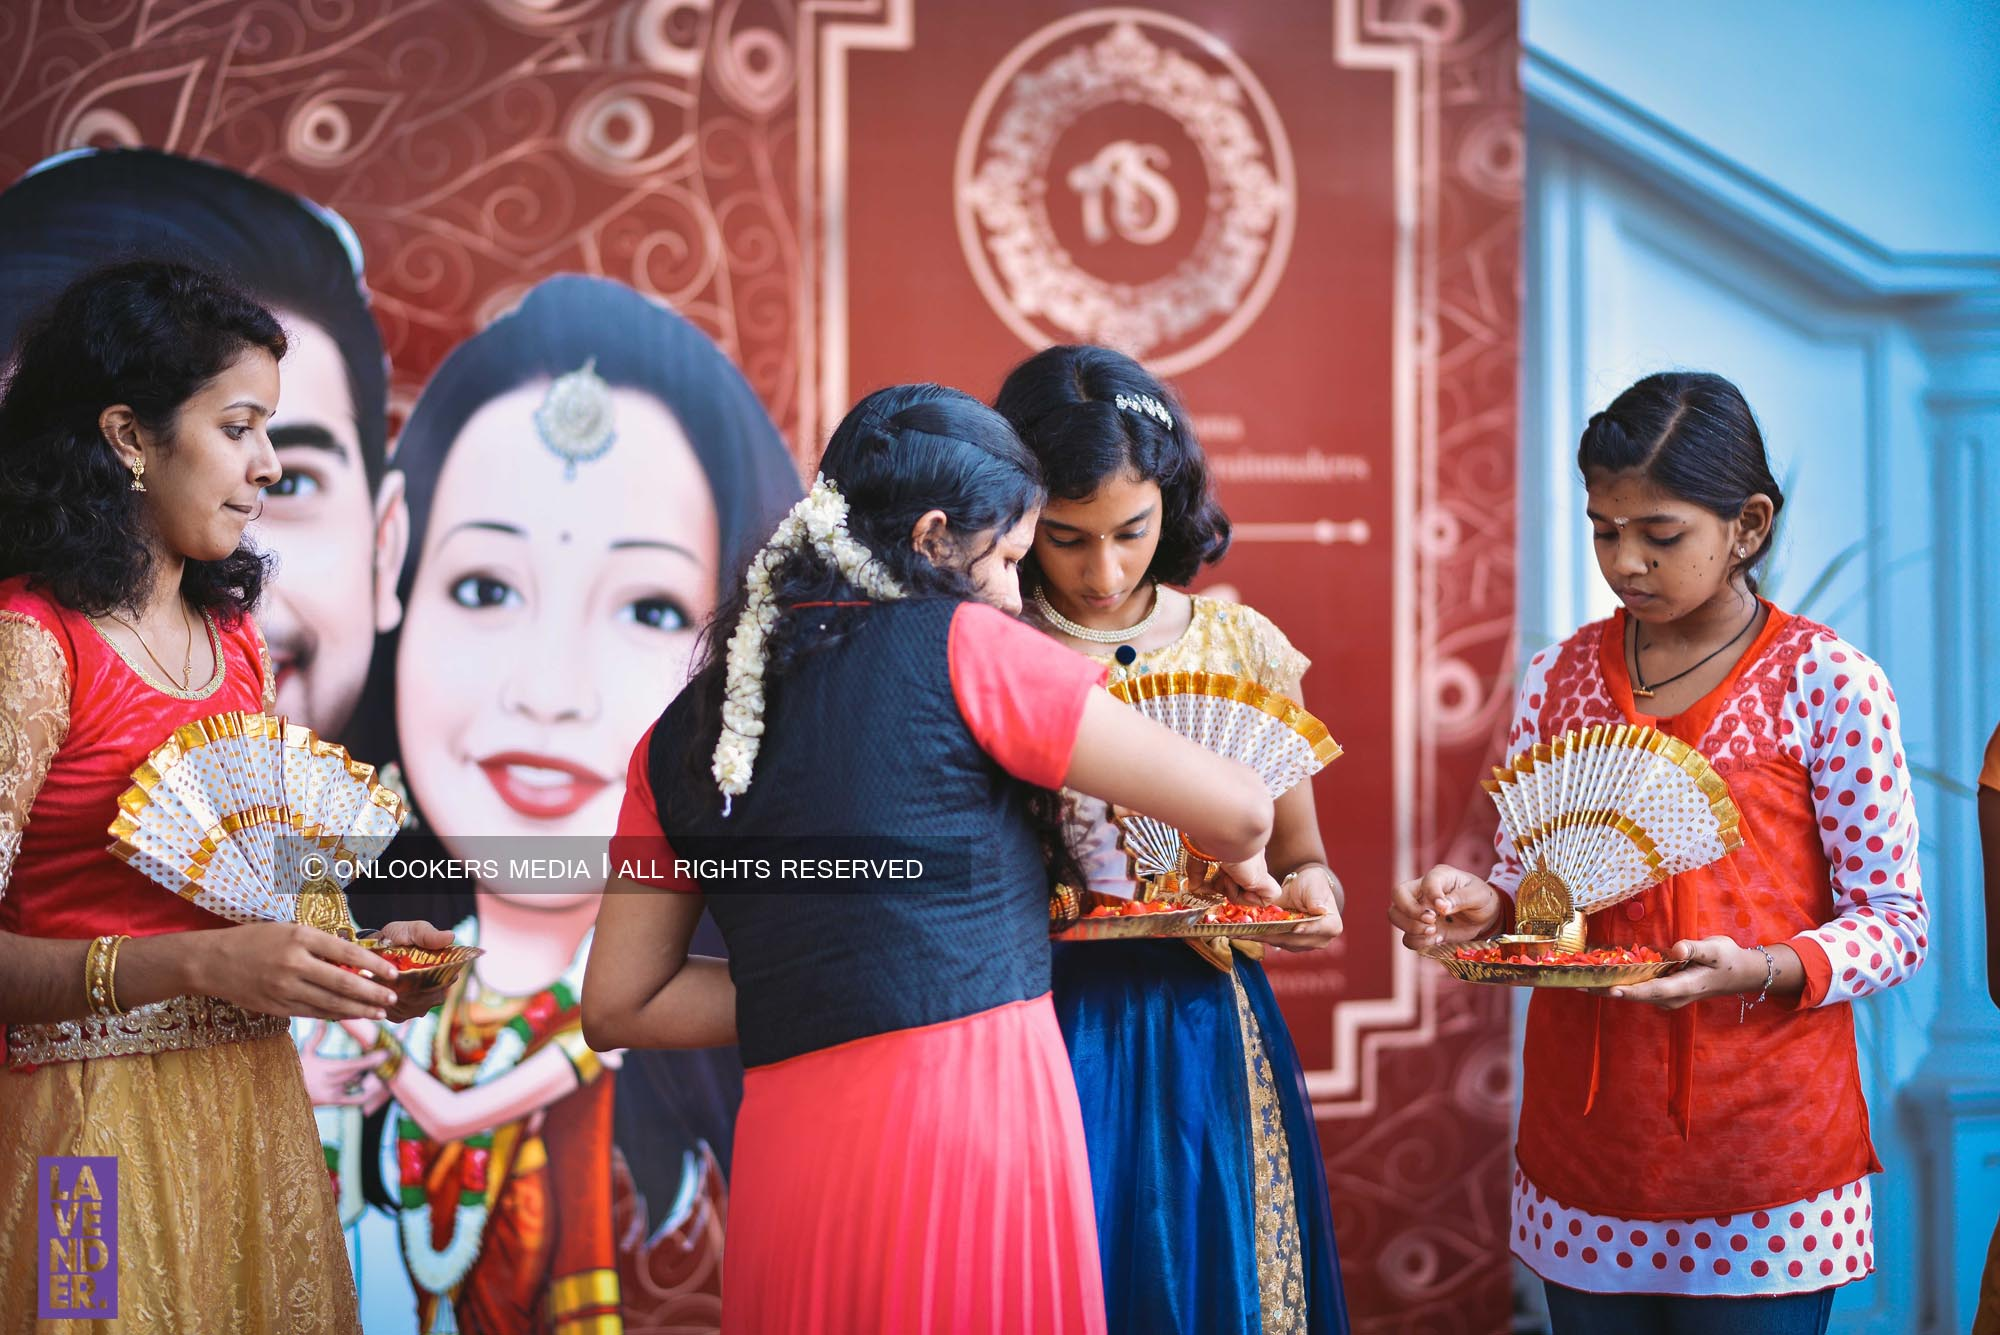 sreejith vijay wedding stills , actor sreejith vijay wedding , sreejith vijay photos ,shweta menon hero sreejith vijay wedding , sreejith vijay wedding news, actor sreejith vijay wife , sreejith vijay wife photos , sreejith vijay couple photos , sreejith vijay wedding photos , sreejith vijay marrage photos , actor sreejith vijay weddiing photos